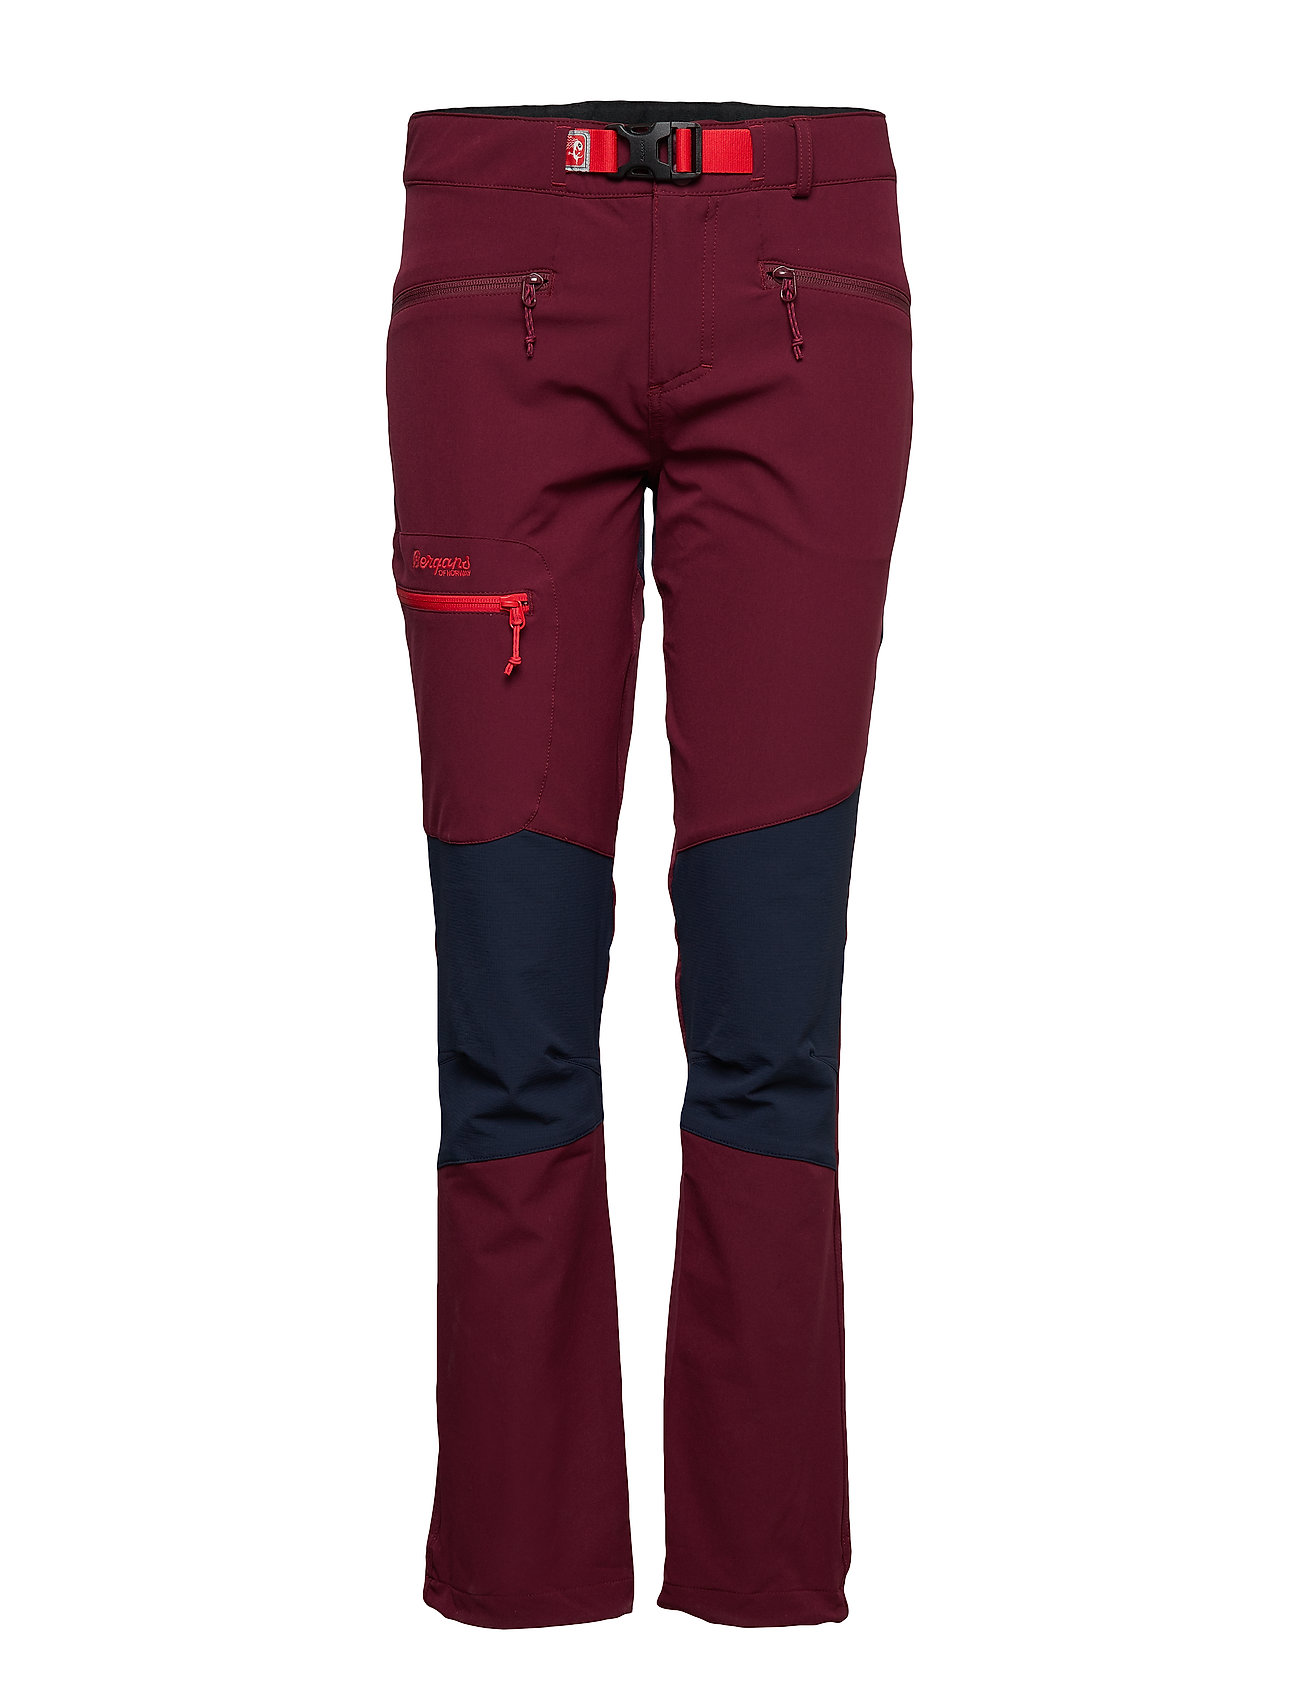 Bergans Cecilie Mountaineering Pnt